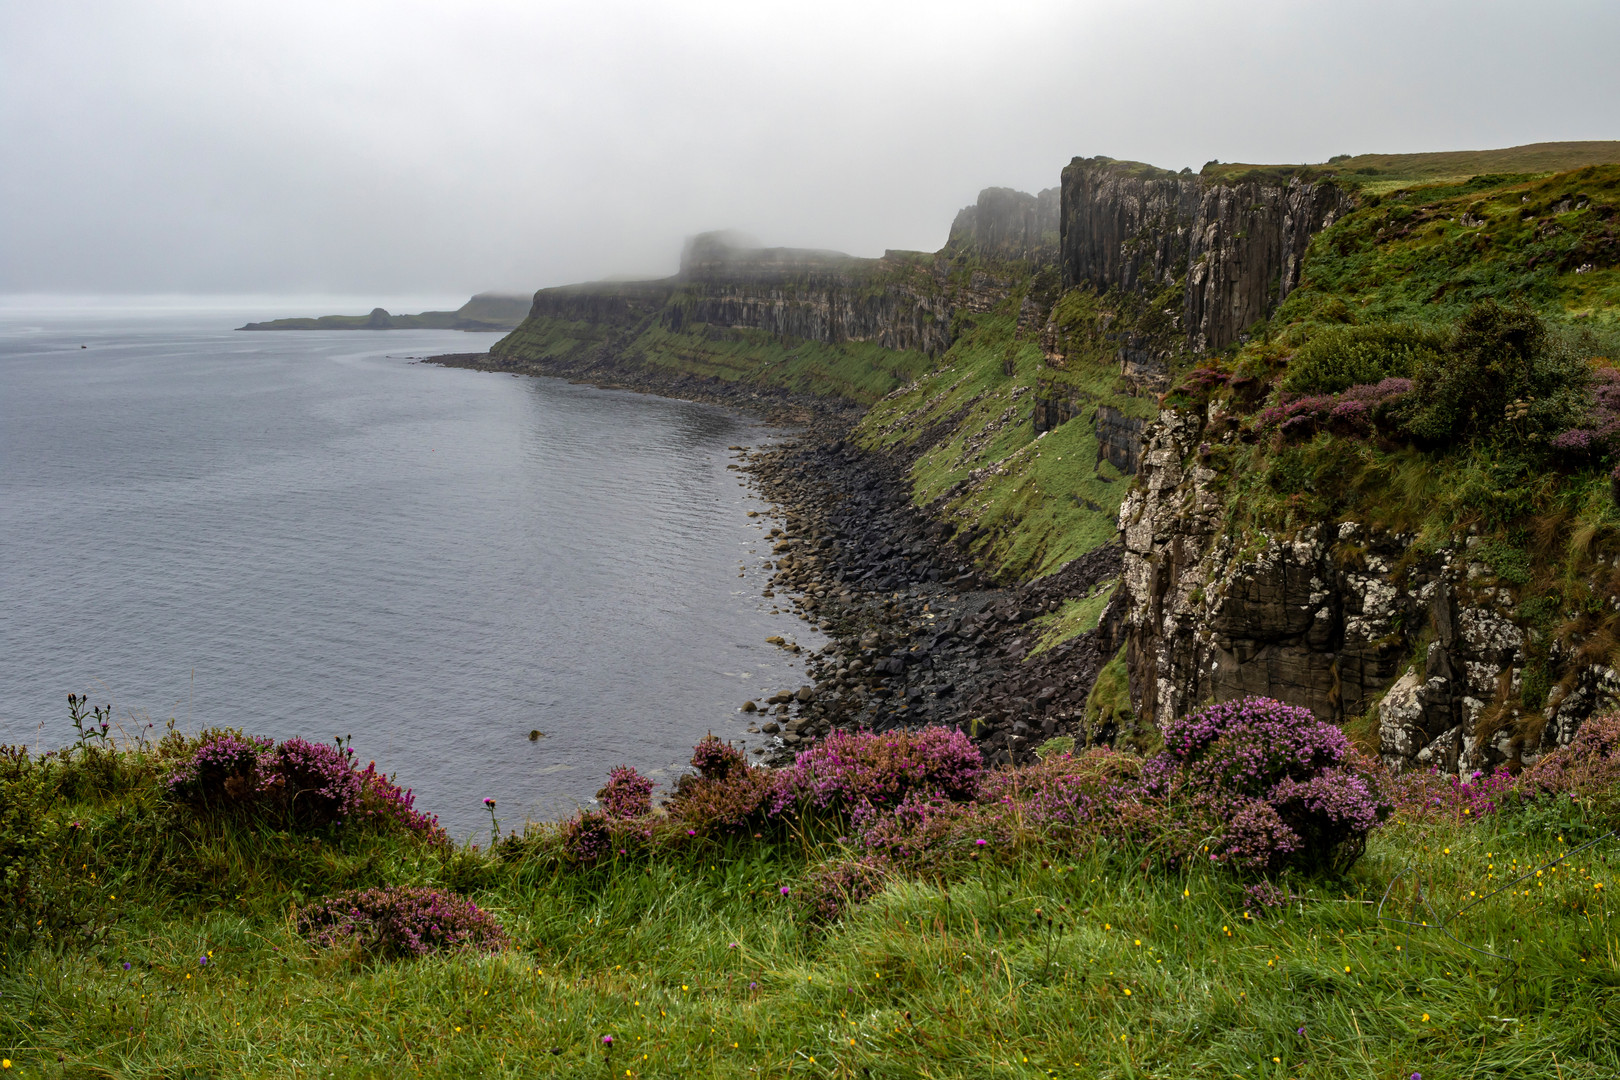 Foggy Cliffs at the Kilt Rock and Mealt Falls Viewpoint, Isle of Skye, Scotland